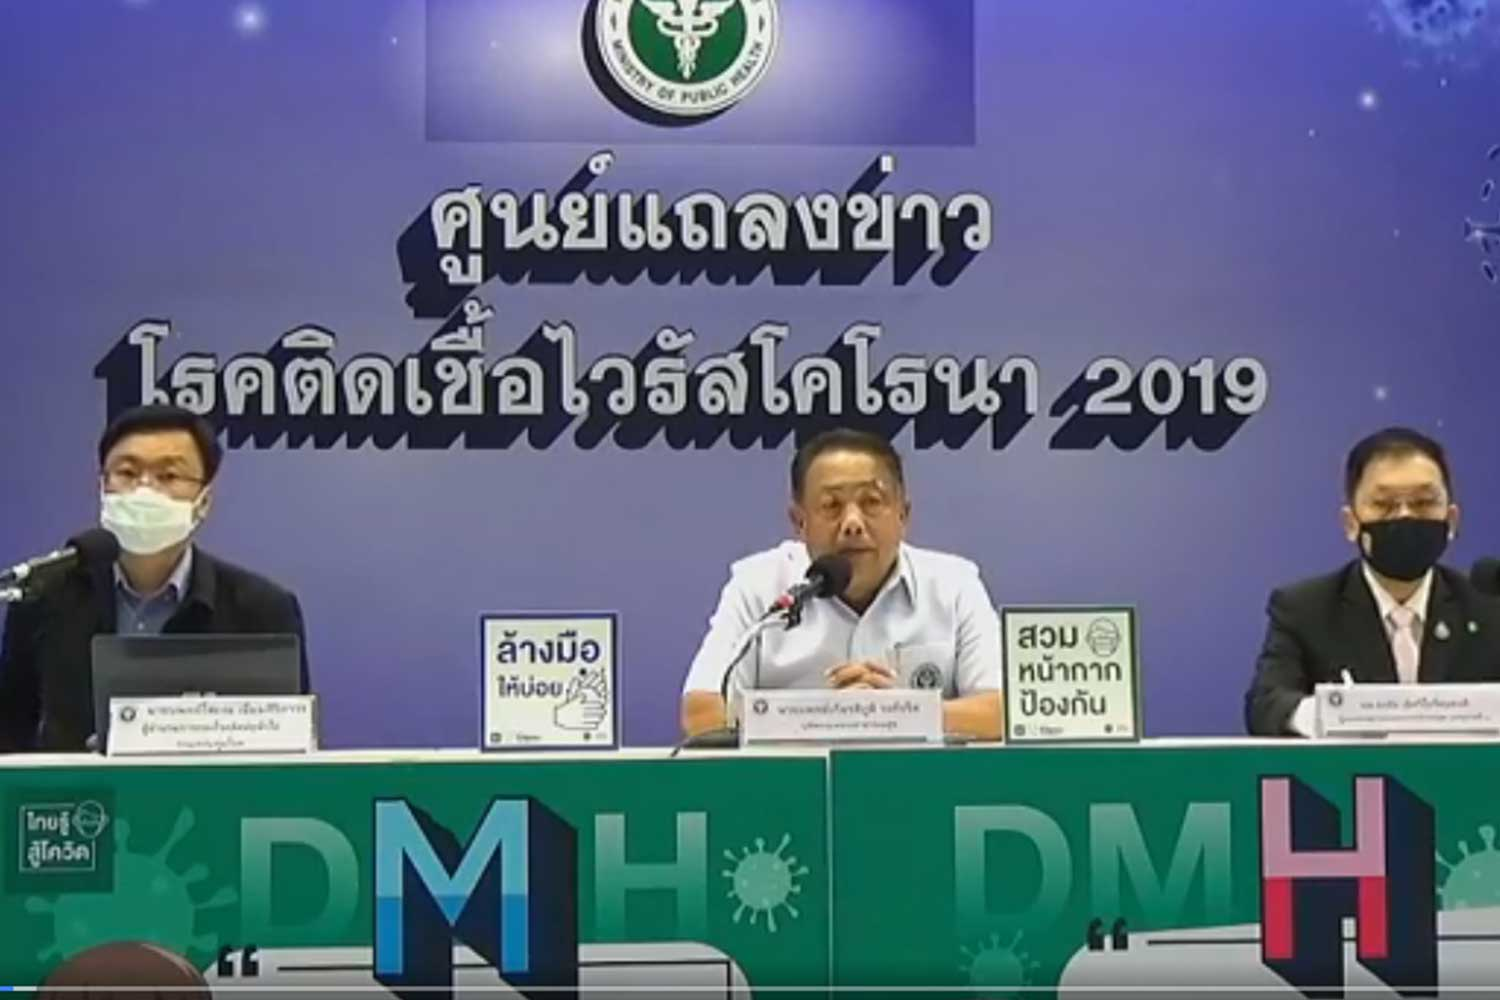 Senior health officials announce the new Covid-19 infection in Chiang Mai, as another woman who crossed the border illegally from Myanmar to Mae Sai district tests positive. (Photo: Disease Control Department's Facebook page)